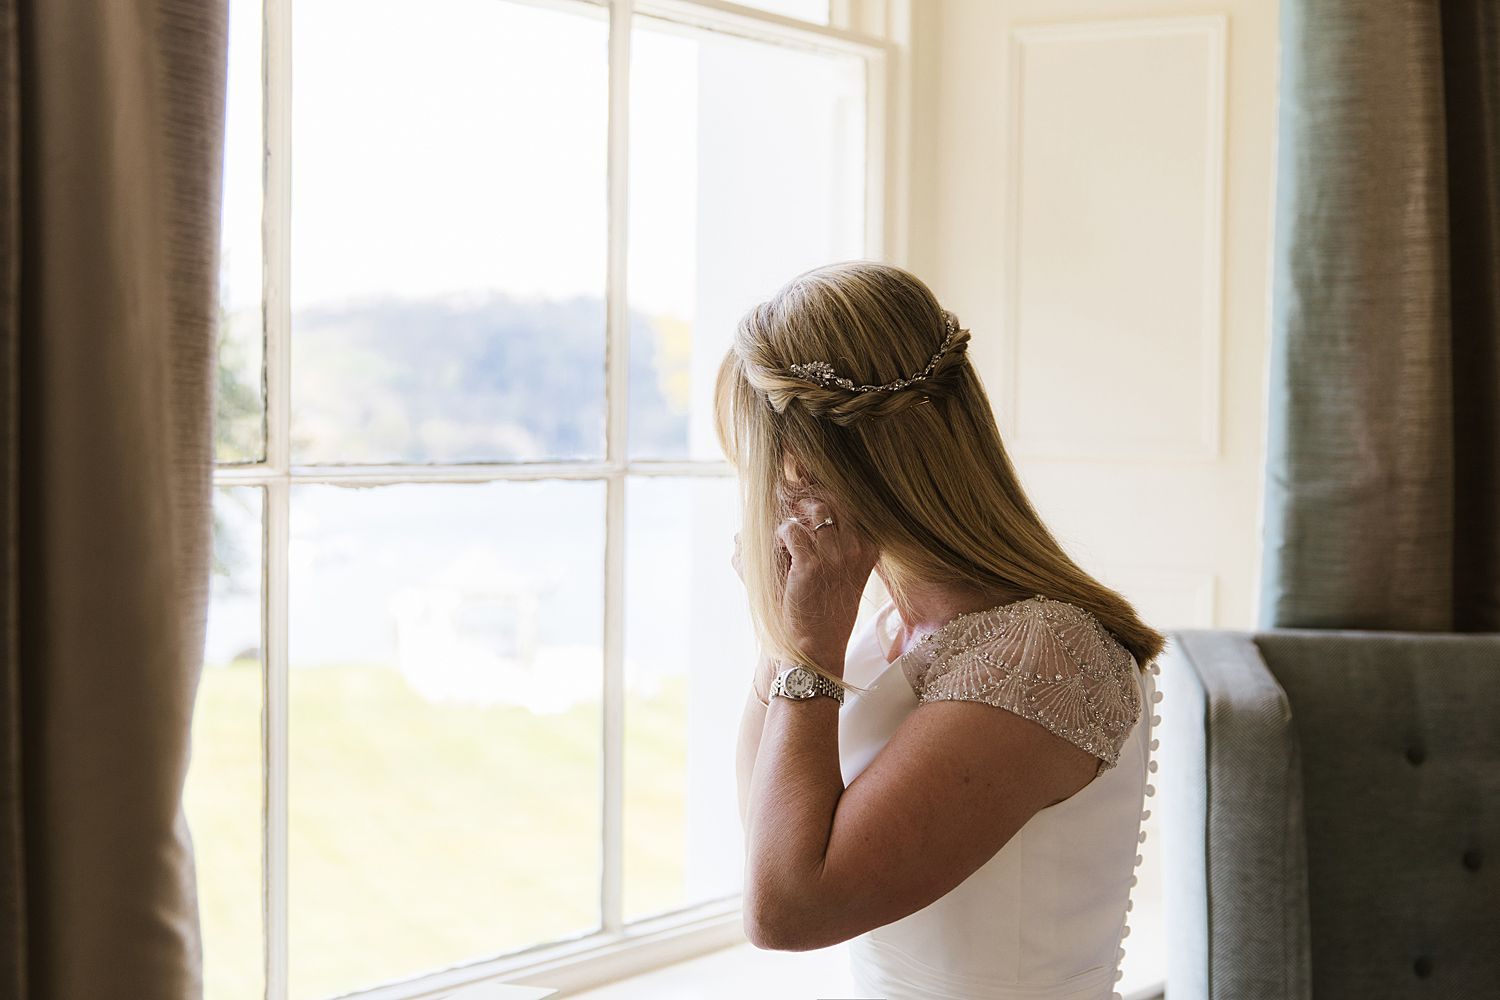 Bride puts in earrings in front of window at Storrs Hall, Bowness on Windermere